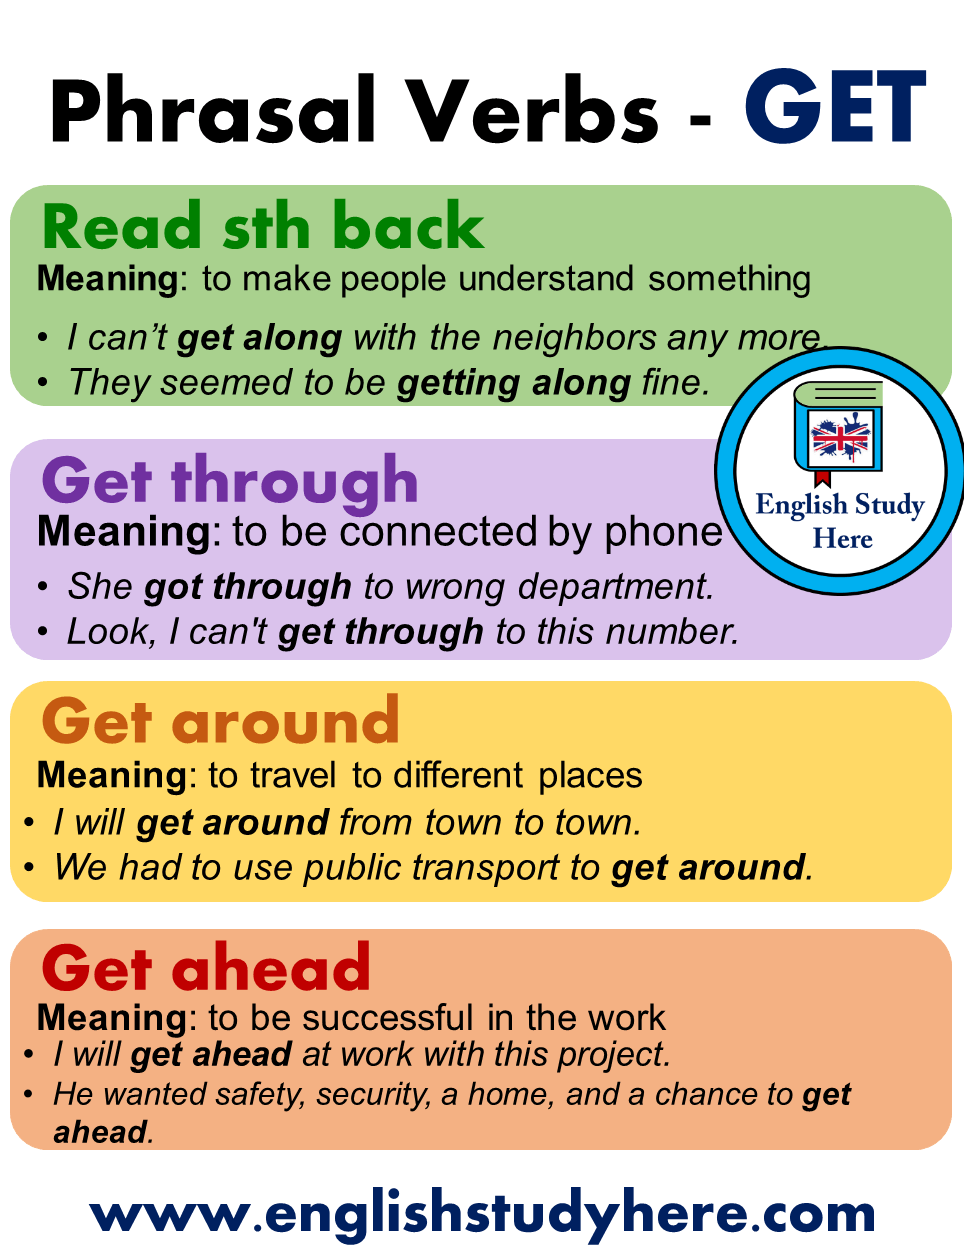 English Phrasal Verbs With Get Definitions And Examples English Study Here English Study Learn English English [ 1259 x 964 Pixel ]